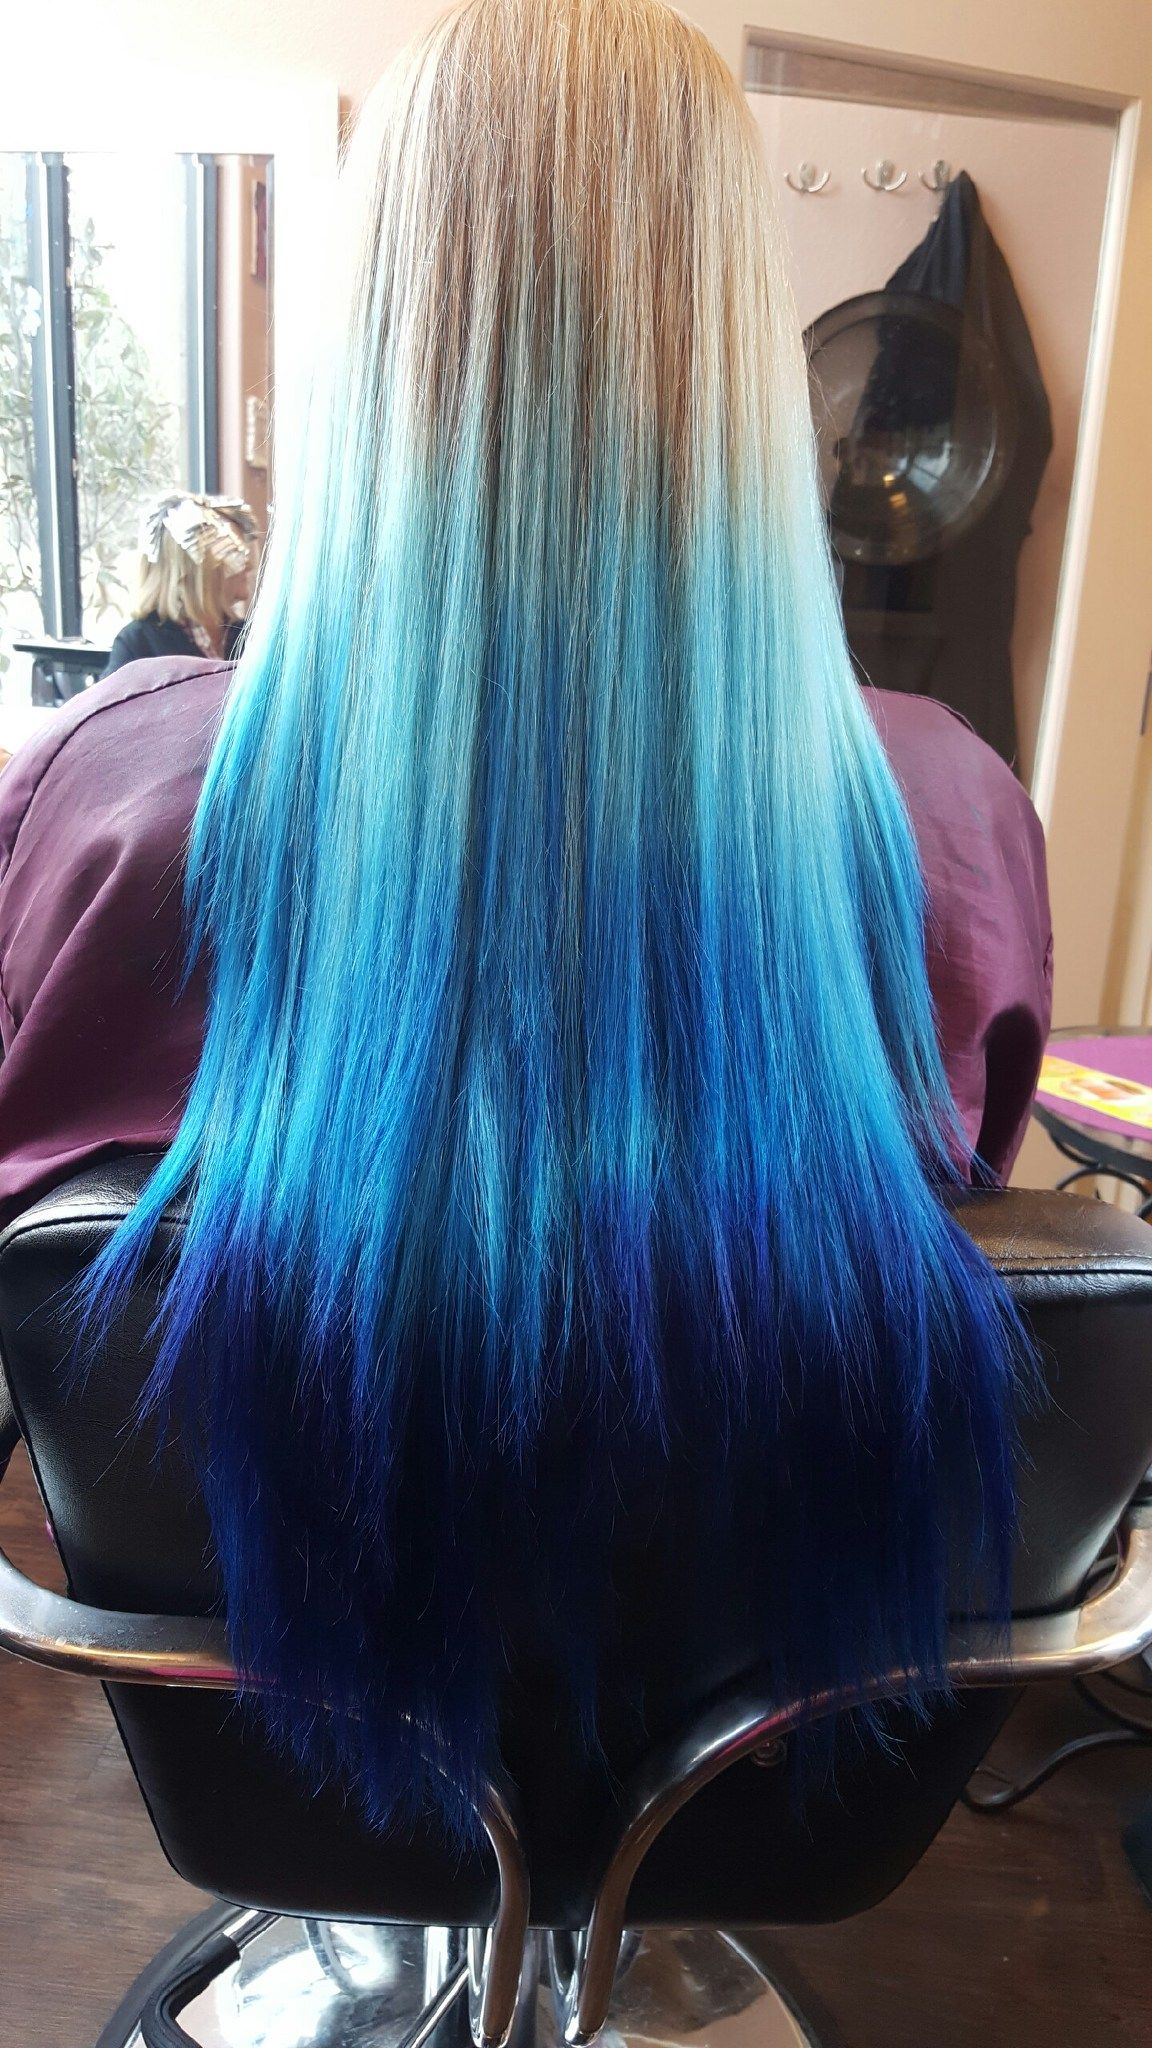 Natural Blonde To Dark Blue Ombre Hair Ombre Hair Blonde Blue Ombre Hair Hair Color Blue